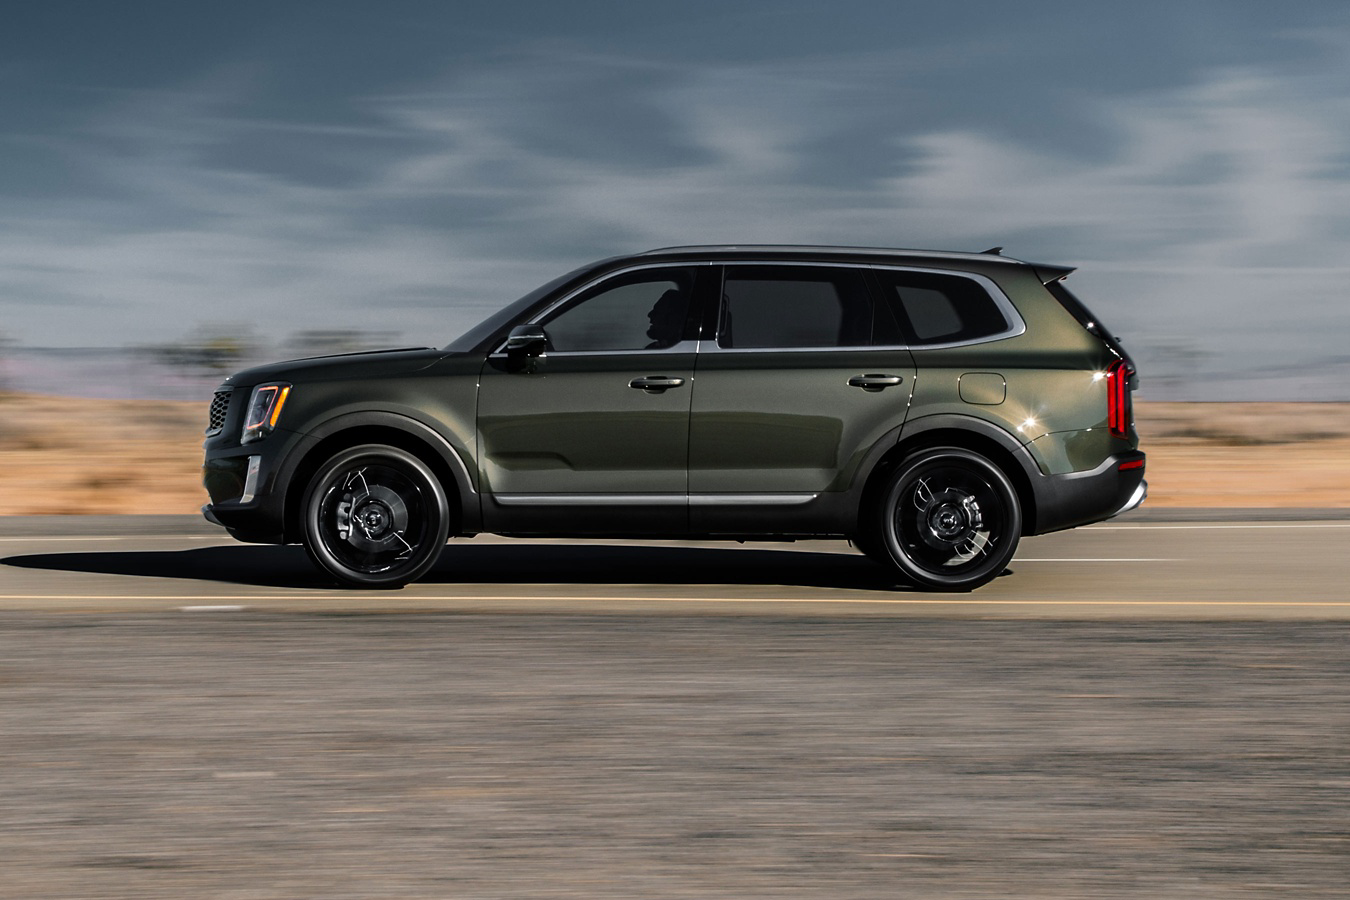 42 Great 2020 Kia Telluride Review Redesign and Concept for 2020 Kia Telluride Review